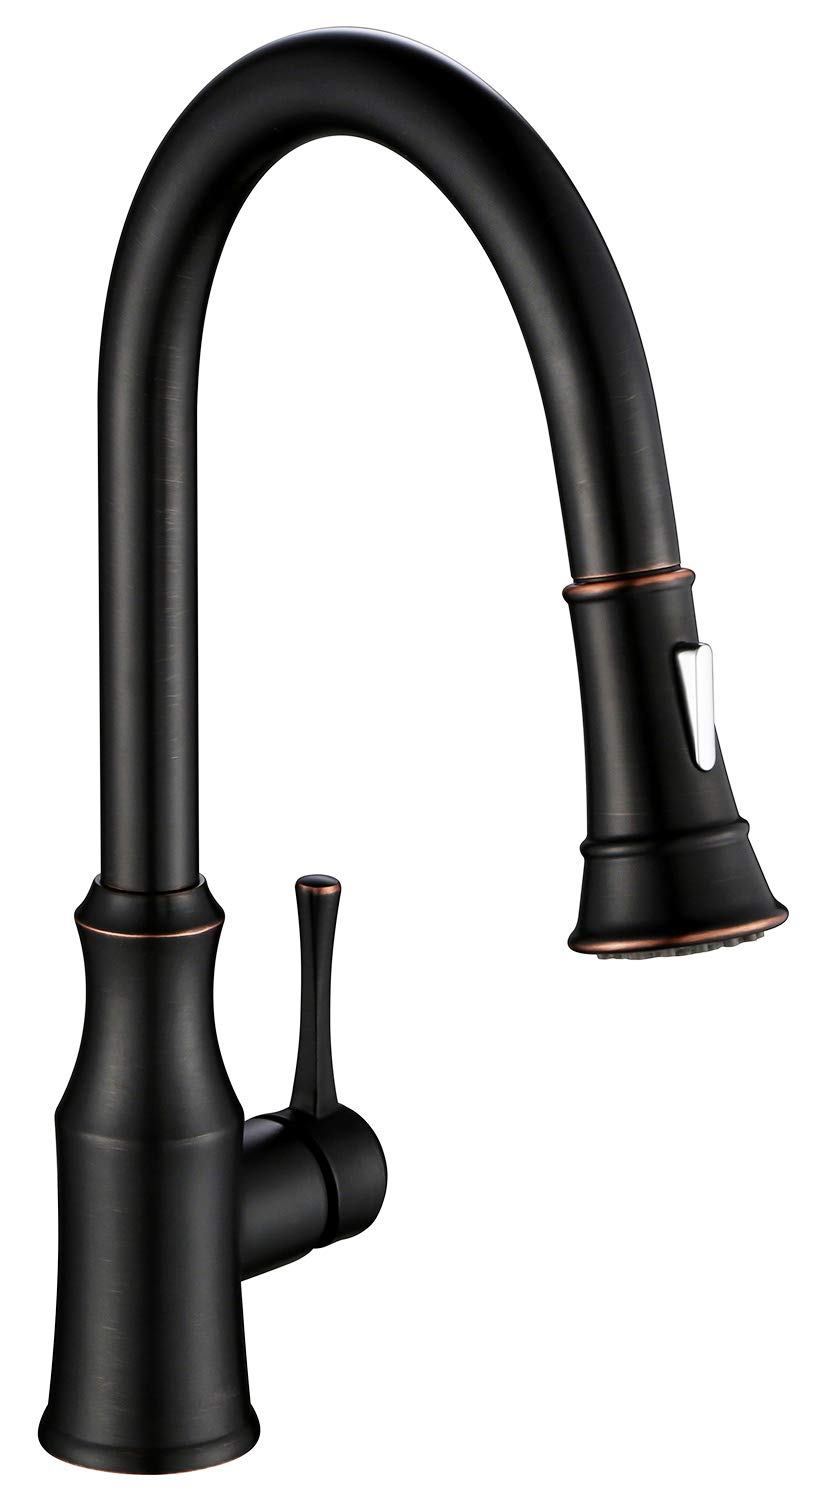 AguaStella AS94ORB Oil Rubbed Bronze Kitchen Sink Faucet with Pull Down Sprayer Single Handle High Arc